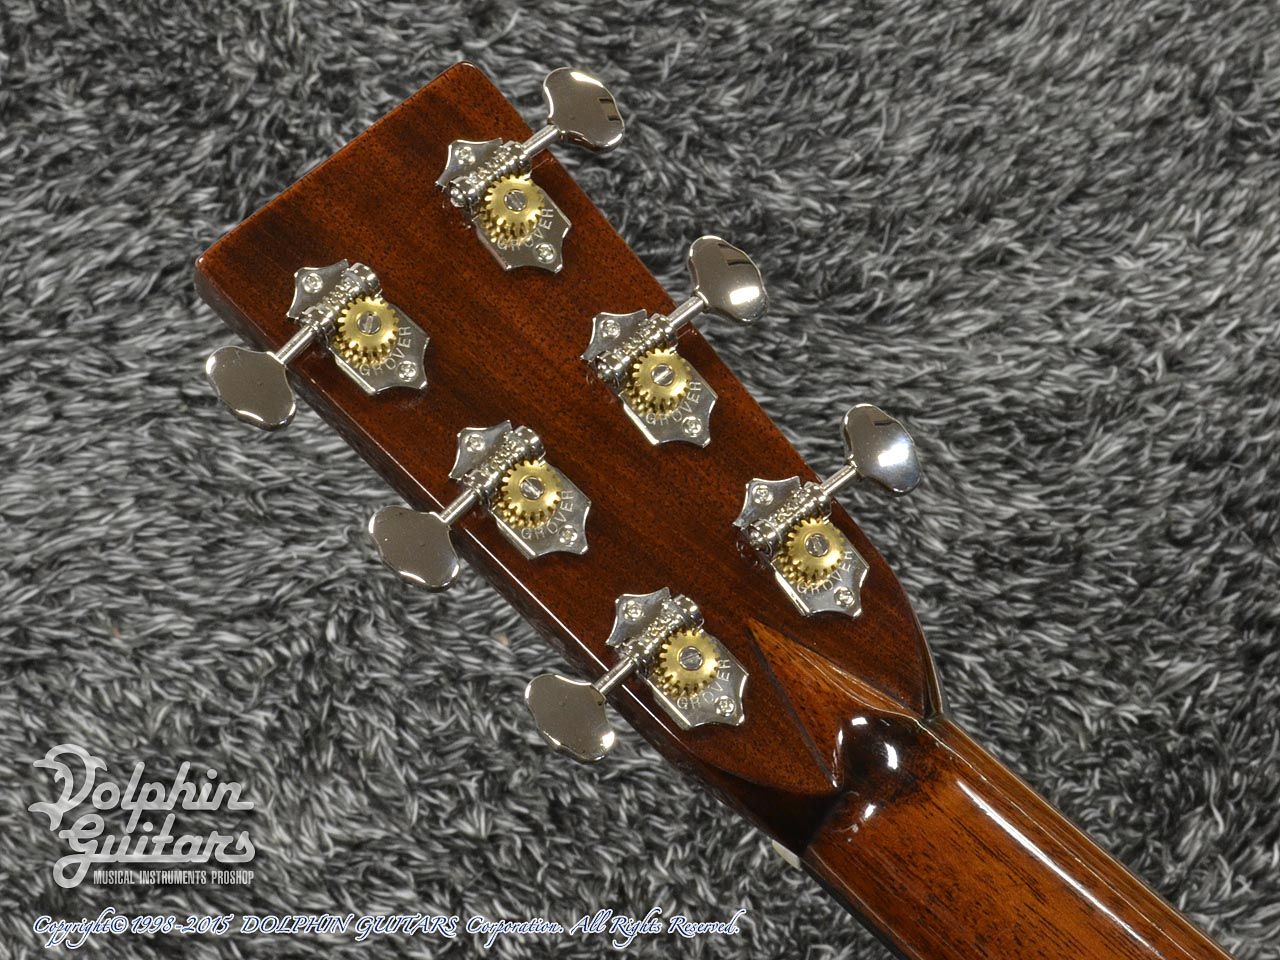 NASHVILLE GUITAR CO.: D Style <Indian Rosewood> (7)